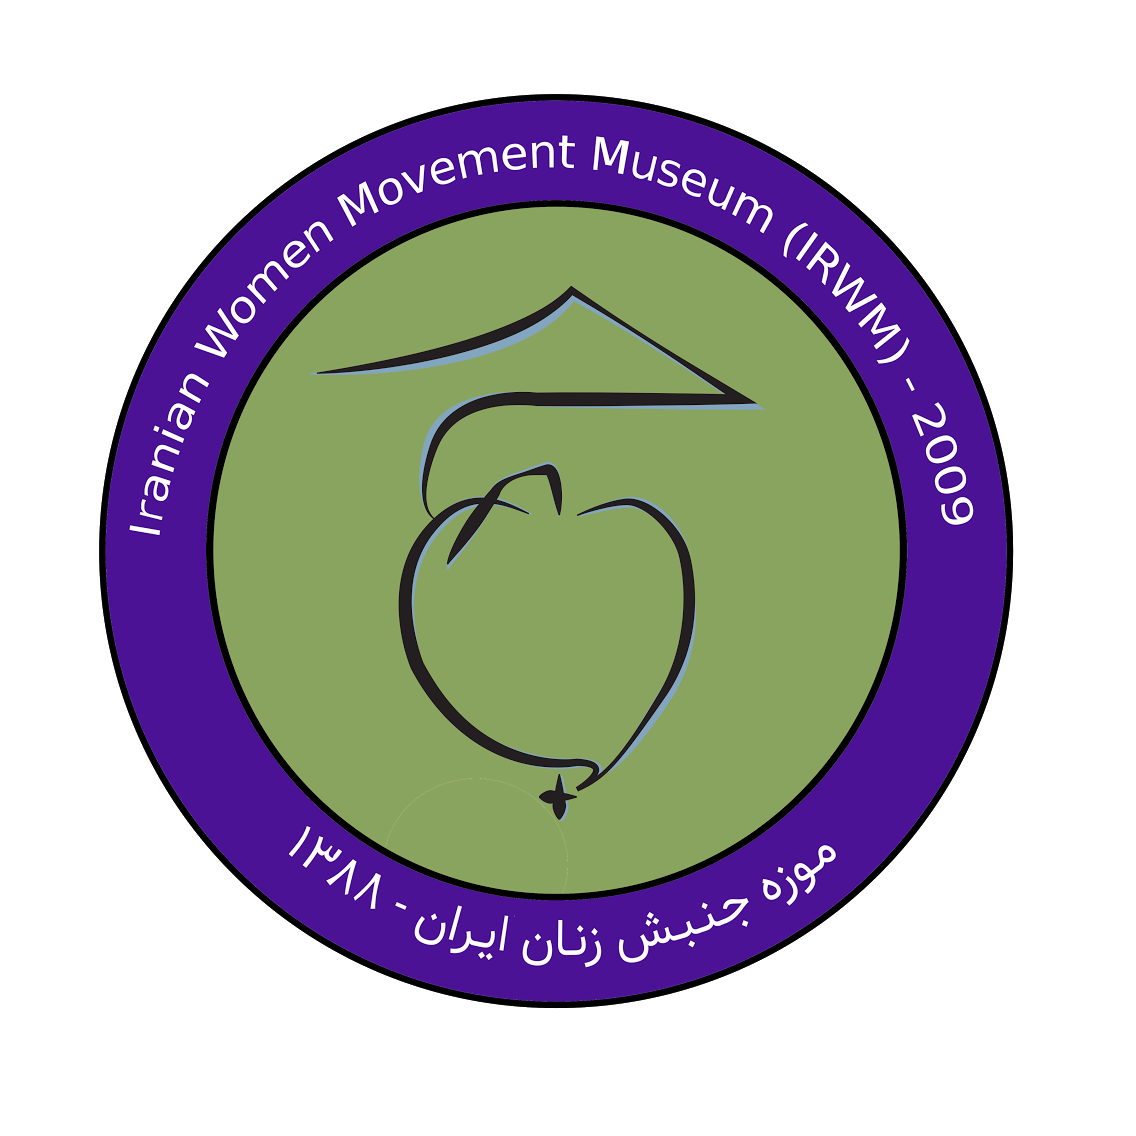 The Museum of Iranian Women's Movement Initiative